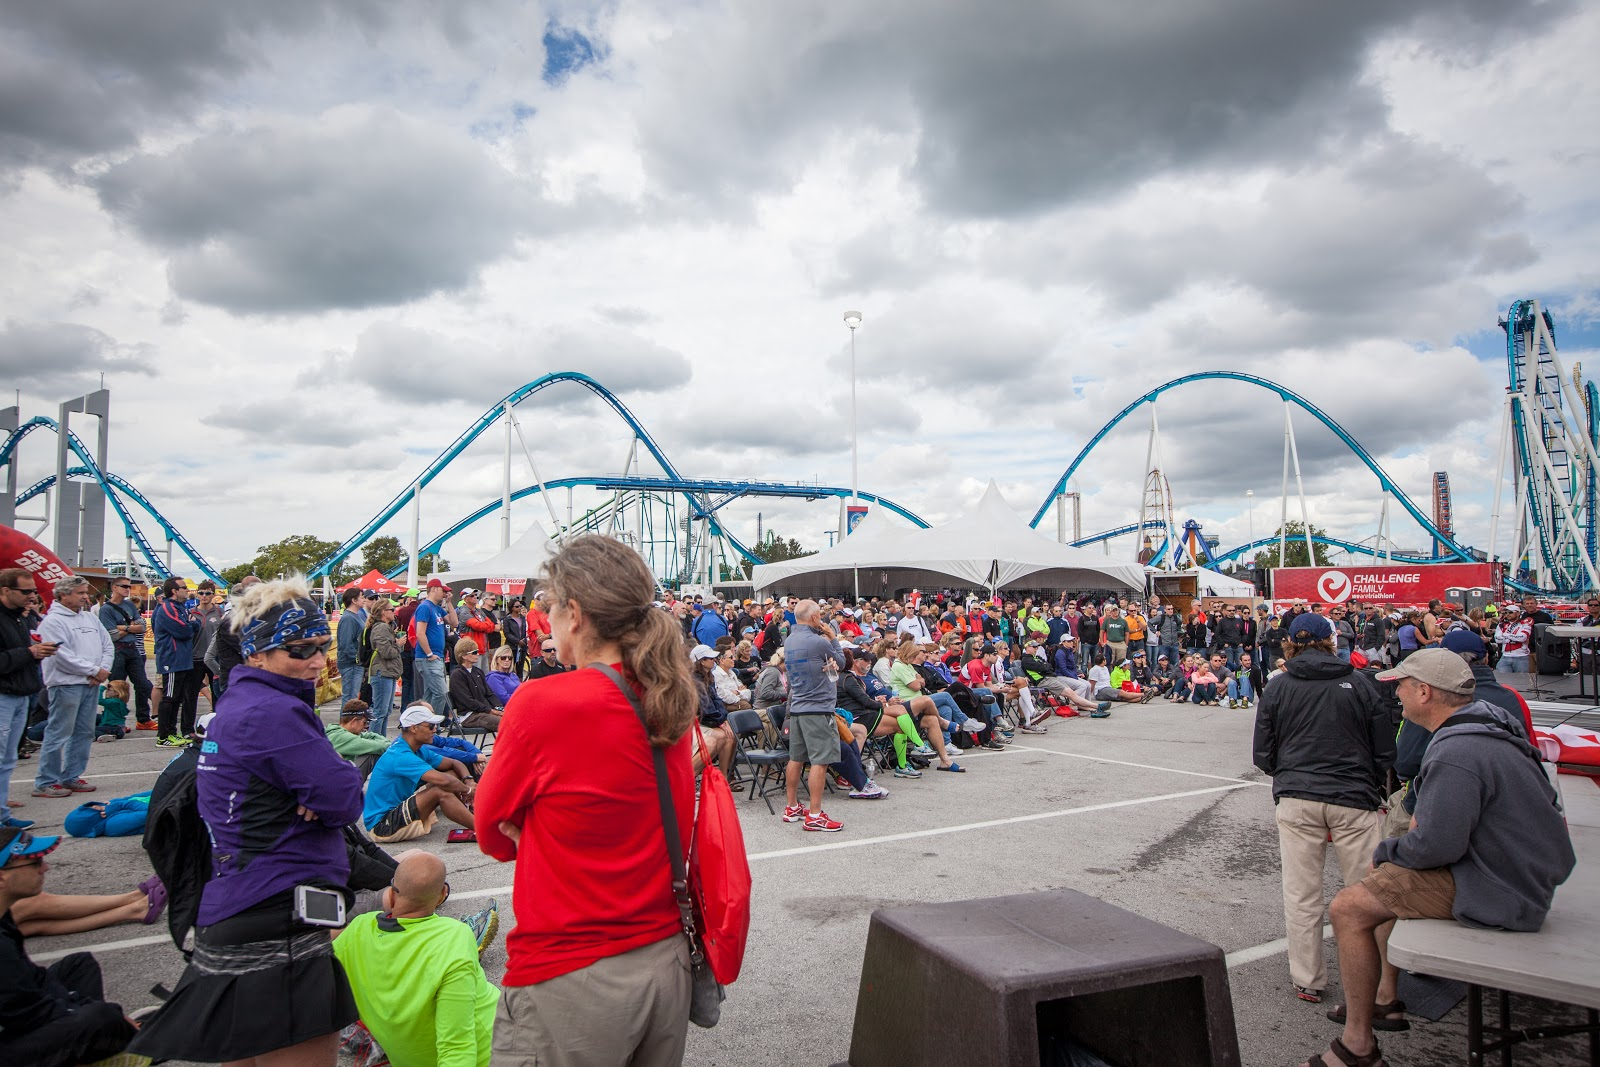 cedar point christian personals Jimmyd productions produced a time lapse at cedar point amusement park in sandusky, ohio over the week of september 15, 2018.